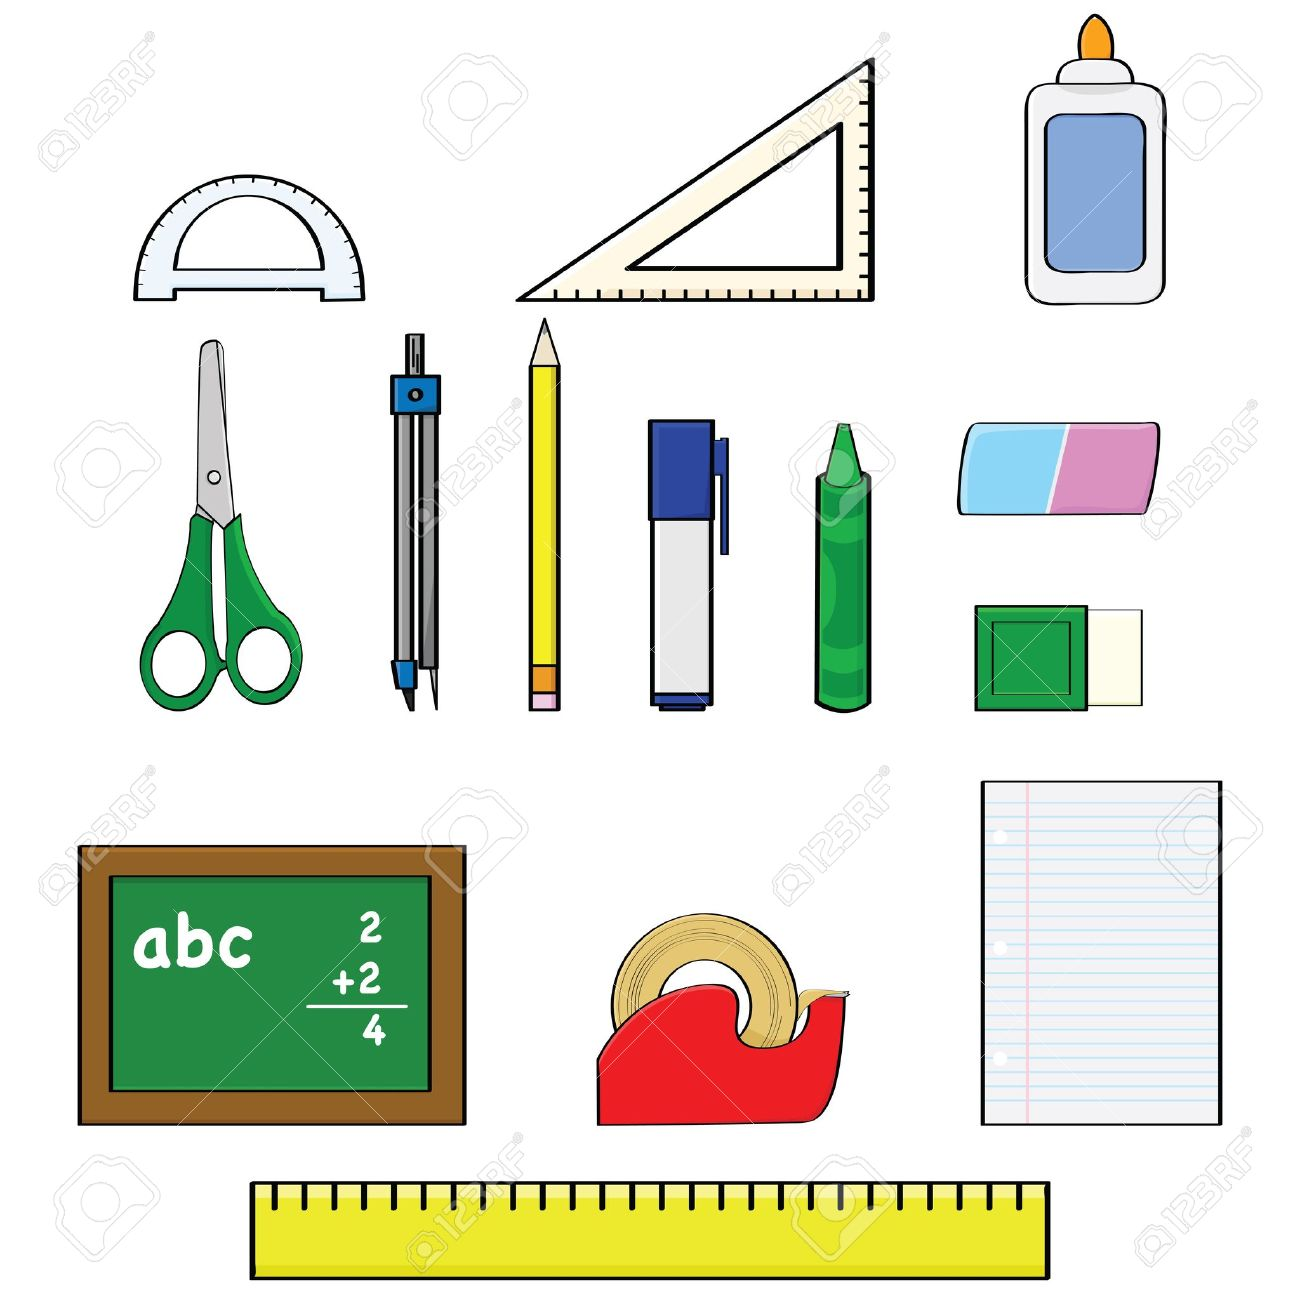 Cartoon illustration set showing different school supplies, such as pencils, rulers and erasers Stock Vector - 10085180